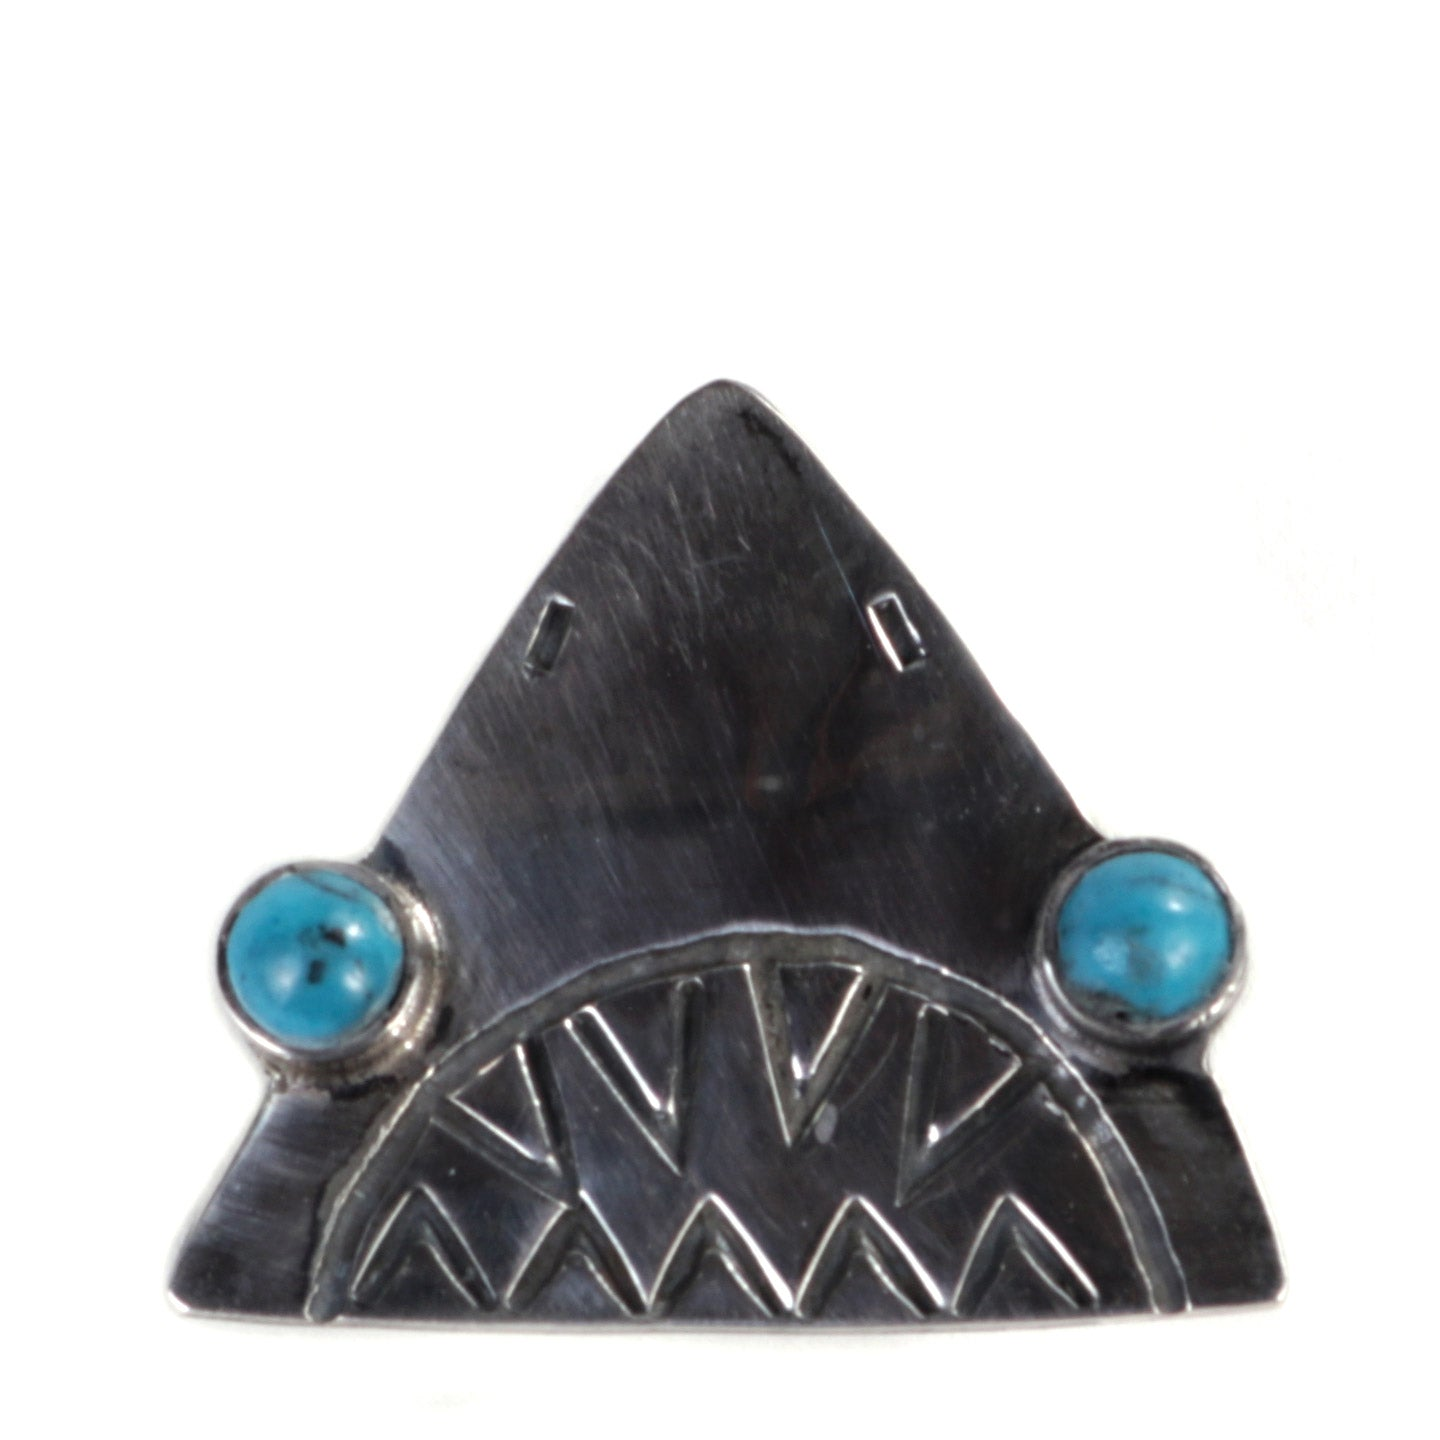 MUNQA JAWS PIN STERLING SILVER